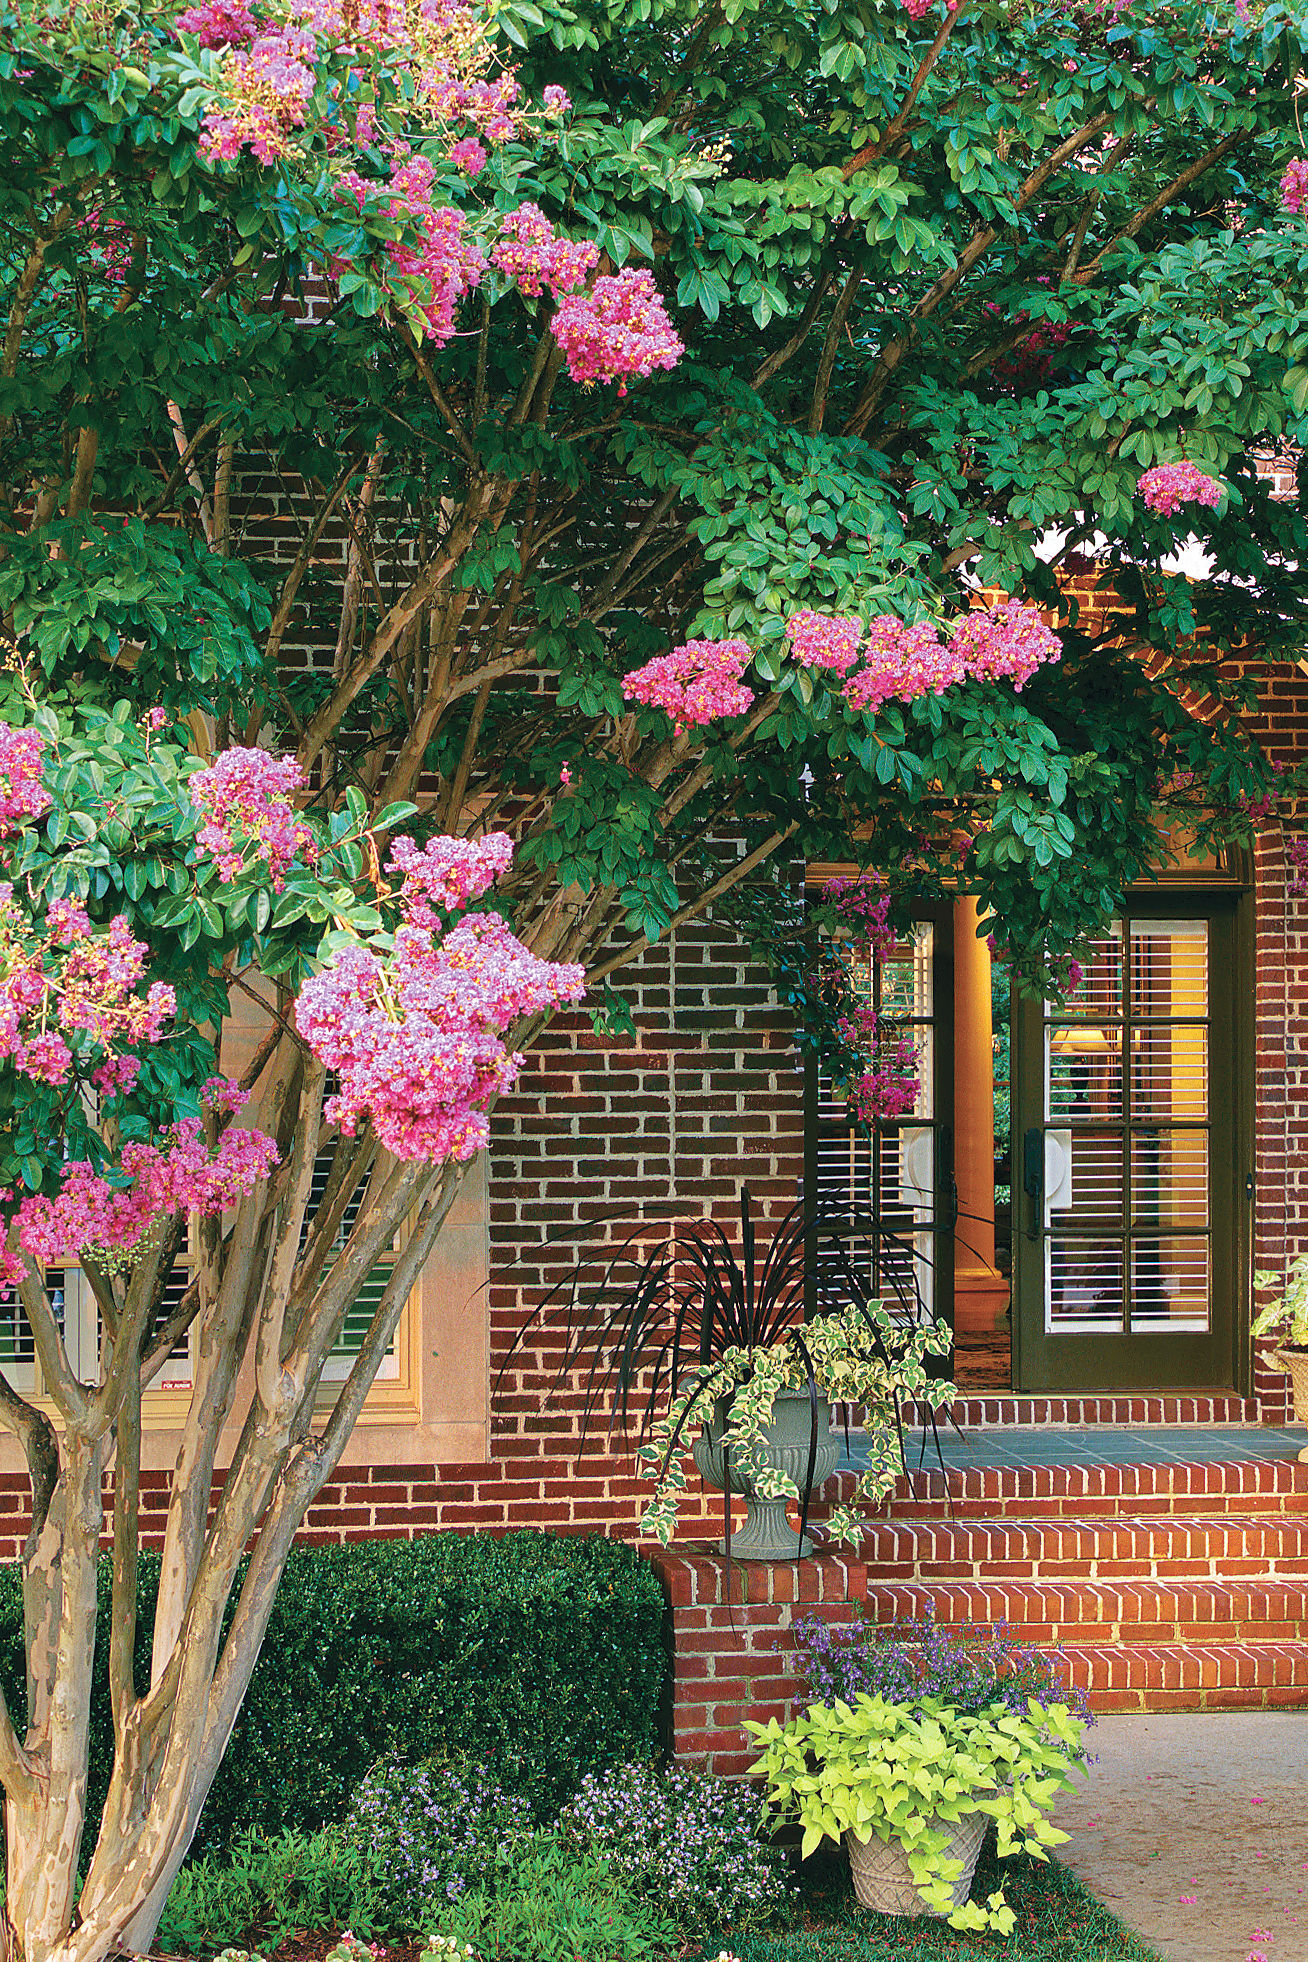 Crepe Myrtles Welcome Summer in the South